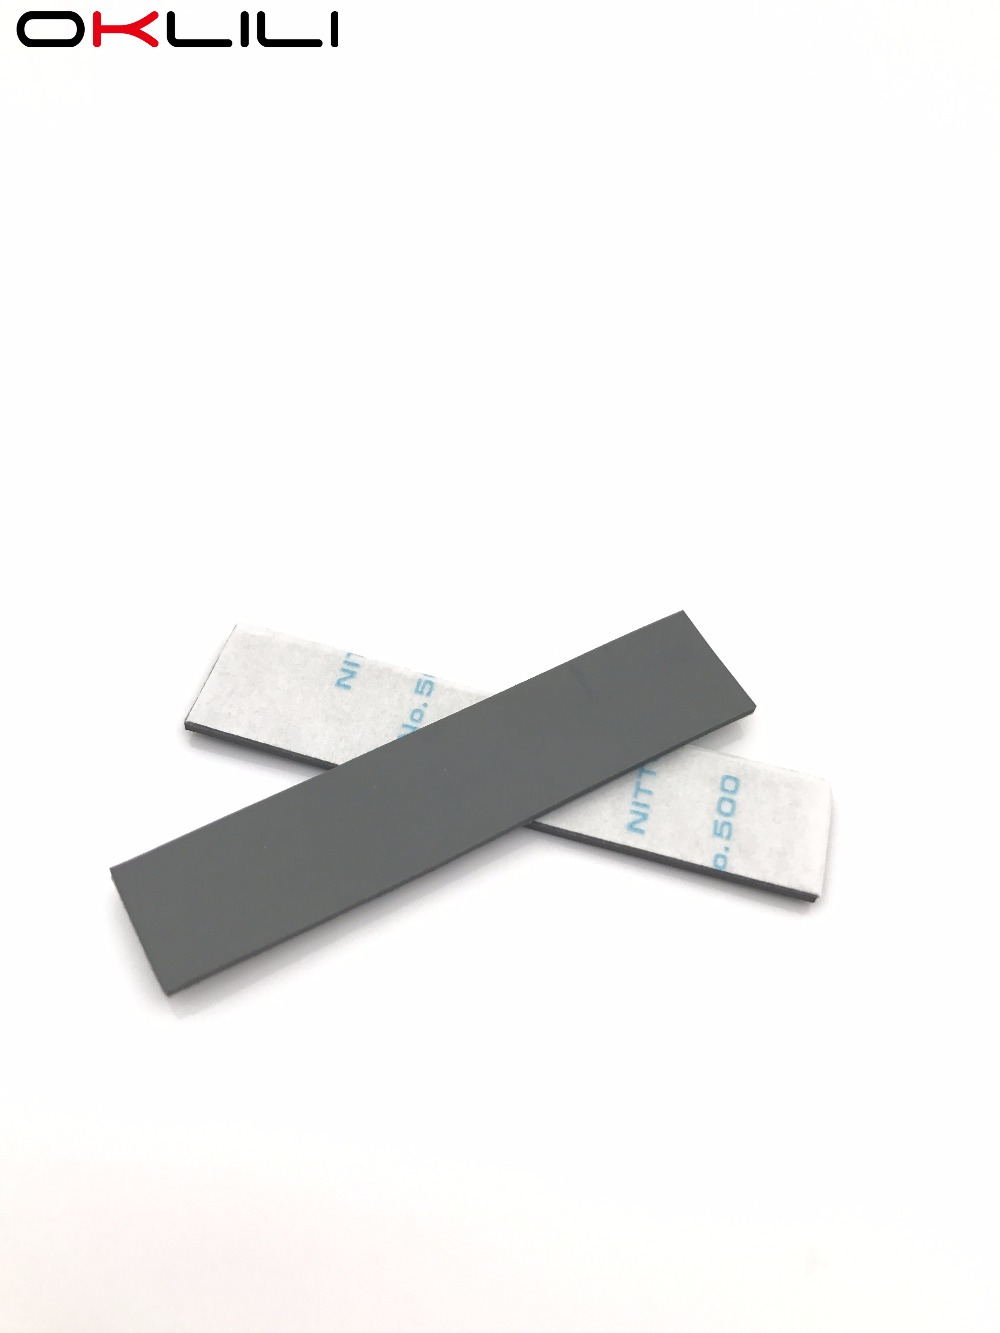 20X Separation Pad Rubber Friction for Xerox Phaser 3420 3425 3450 3500 3150 3130 3120 3119 3115 3121 M15 3200 3300 PE120 PE220 rf5 2886 000 separation pad for printer part 1100 3200